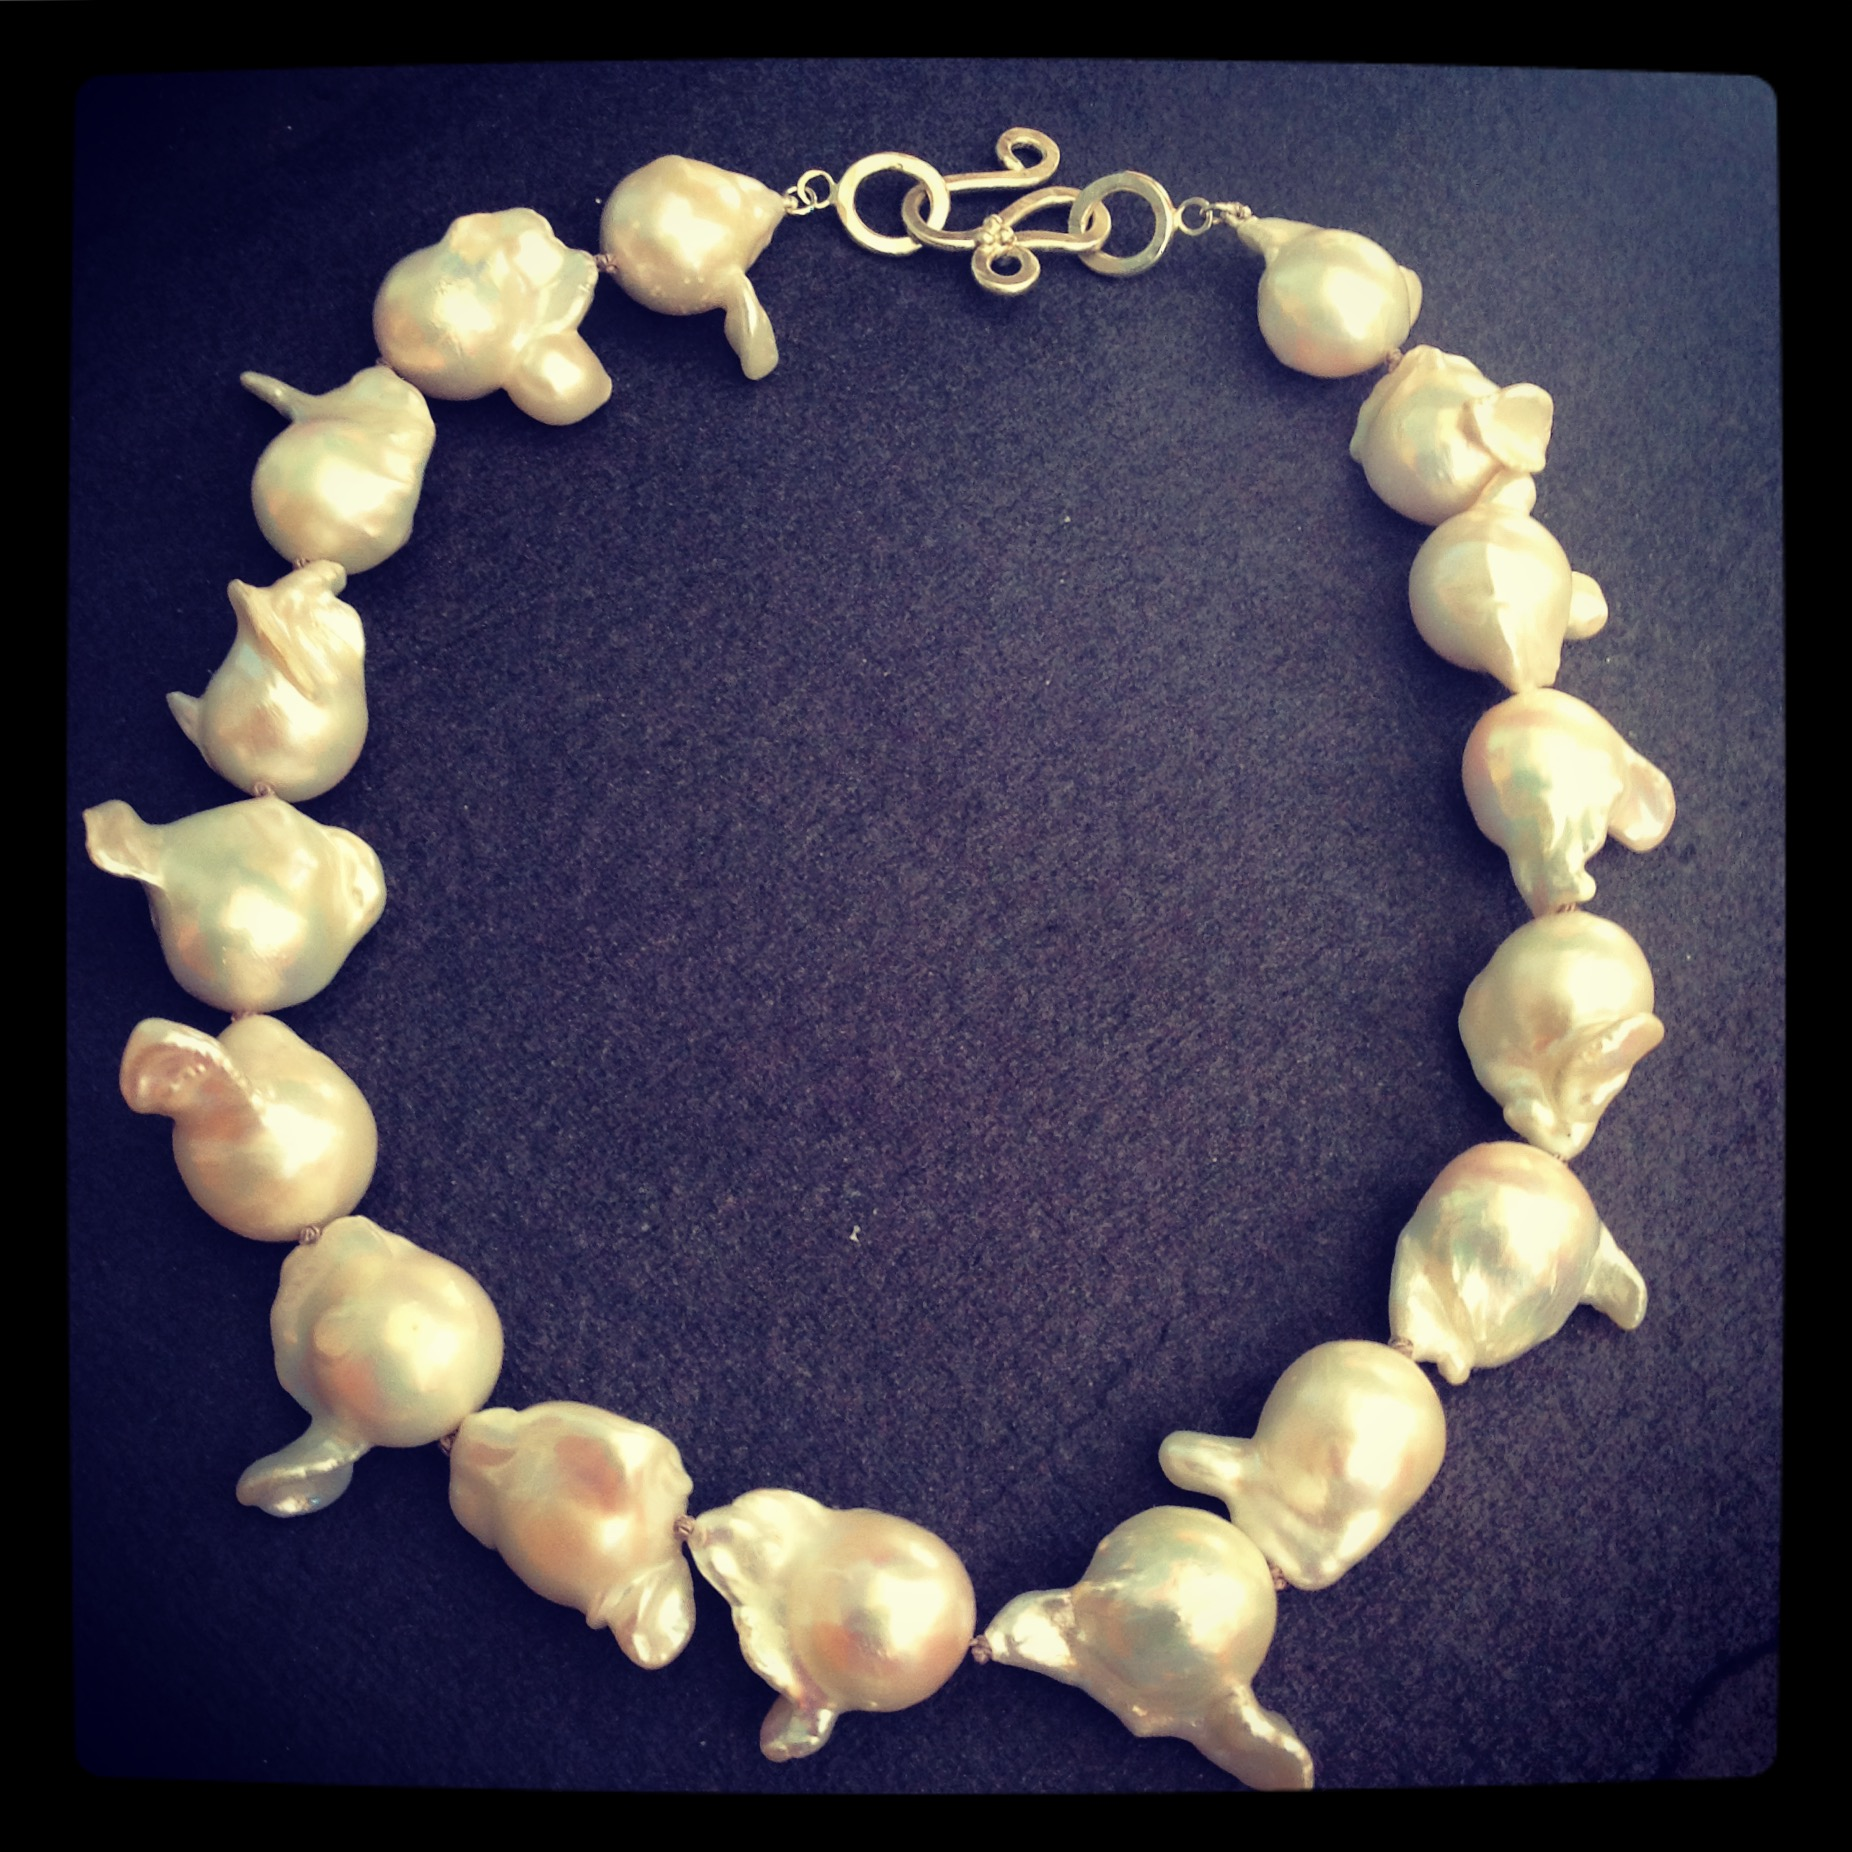 Baroque pearls with a white gold clasp